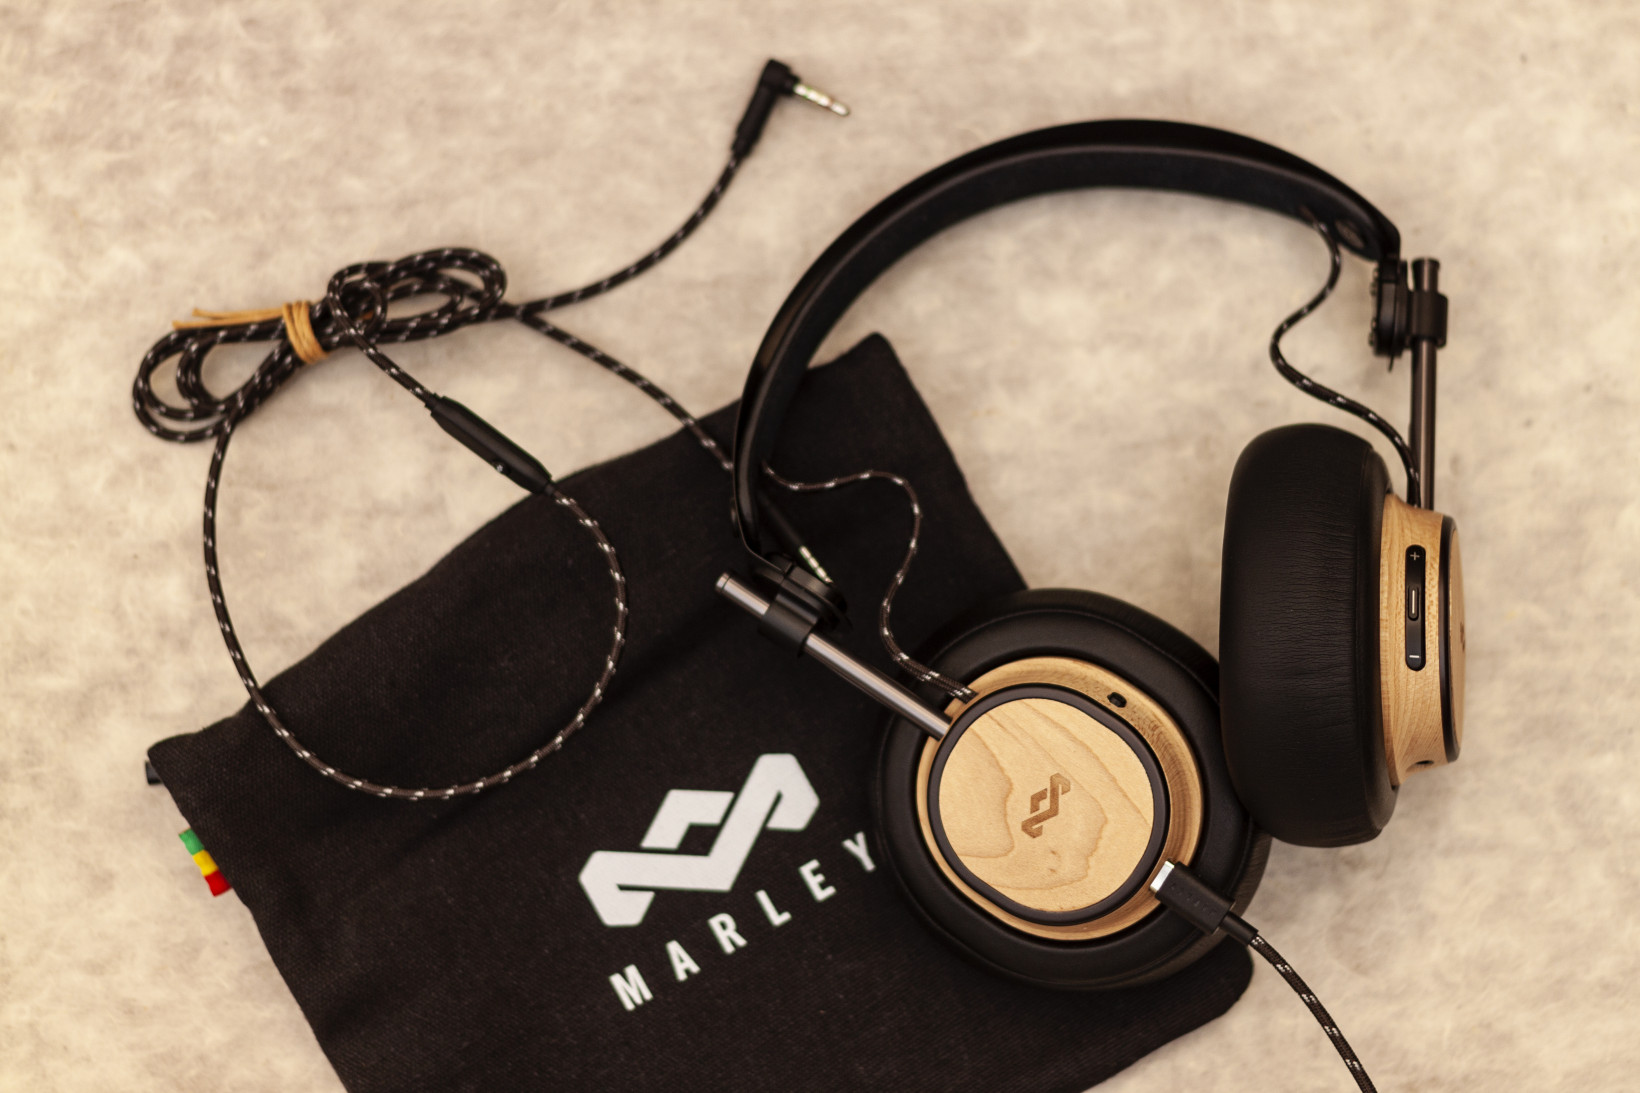 The Exodus headphones come with a 3.5mm cable, a USB-C charging cable, and a cloth carrying case